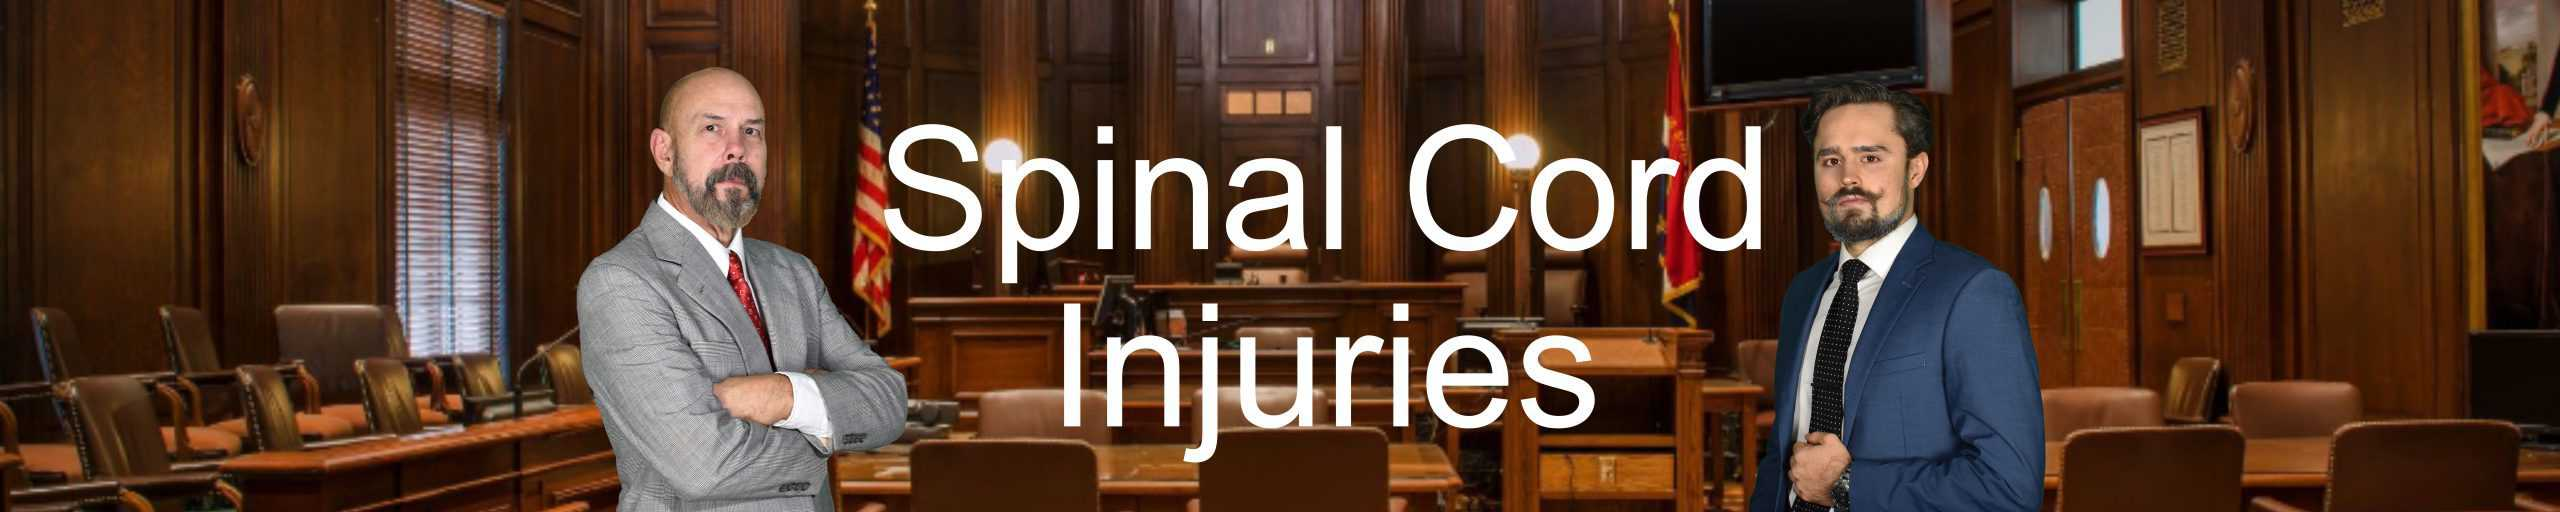 Spinal-Cord-Injury-Accidents-Personal-Injury-Attorney-Lawyer-Hurt-Broken-Rear-End-Money-Settlement-Hospital-ER-Damage-Insurance-Company-Concussion-Whiplash-Post-Syndrome-Confused